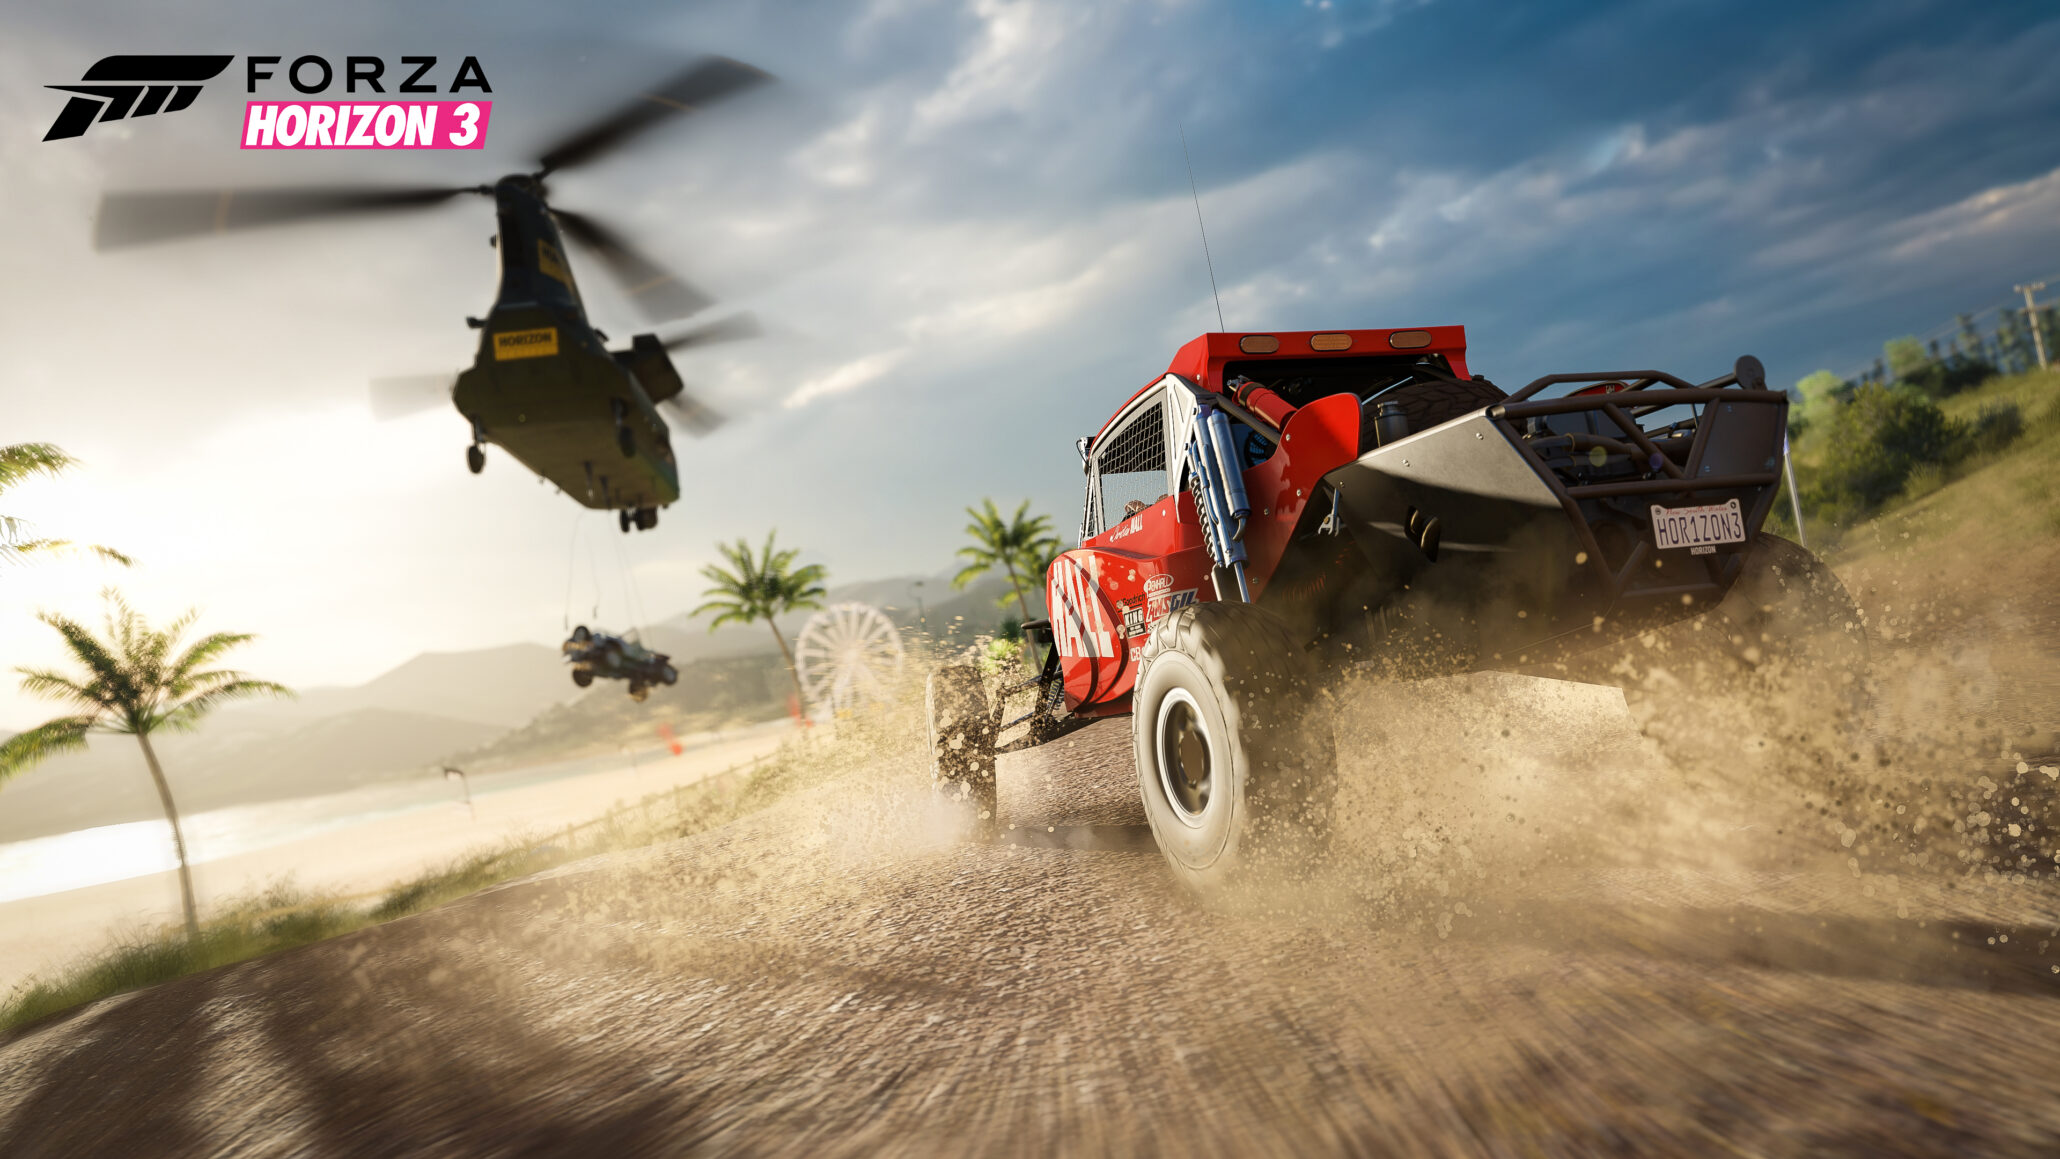 forza horizon 3 pc xbox one comparison doesn 39 t show much difference hdr reportedly looks fantastic. Black Bedroom Furniture Sets. Home Design Ideas